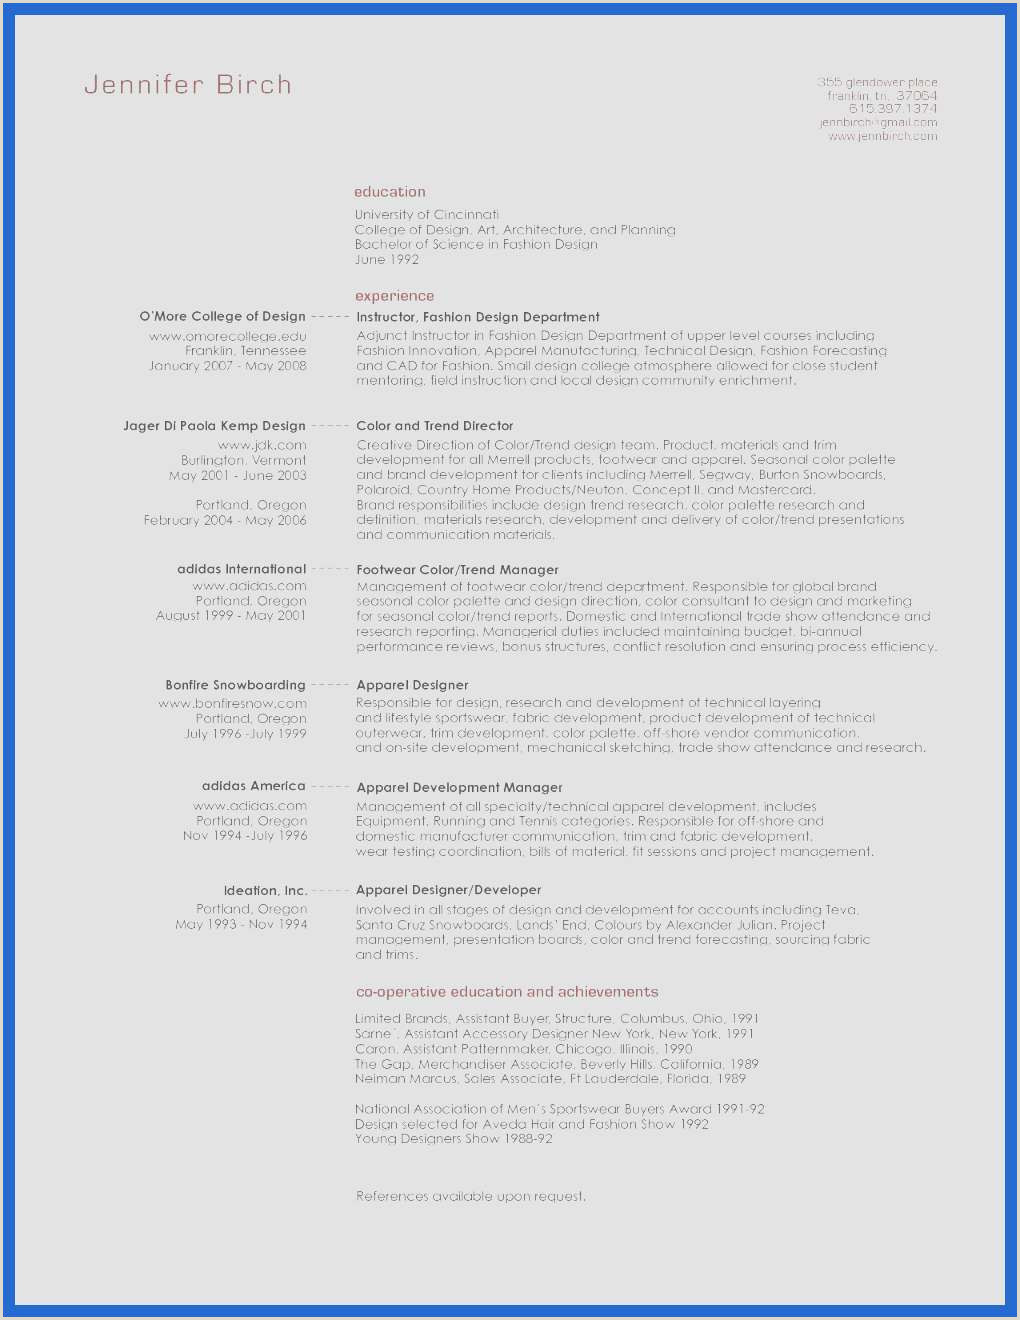 Teacher Resume format In Word Modele Cv Word 2007 Libre Cv Model Best Resume format In